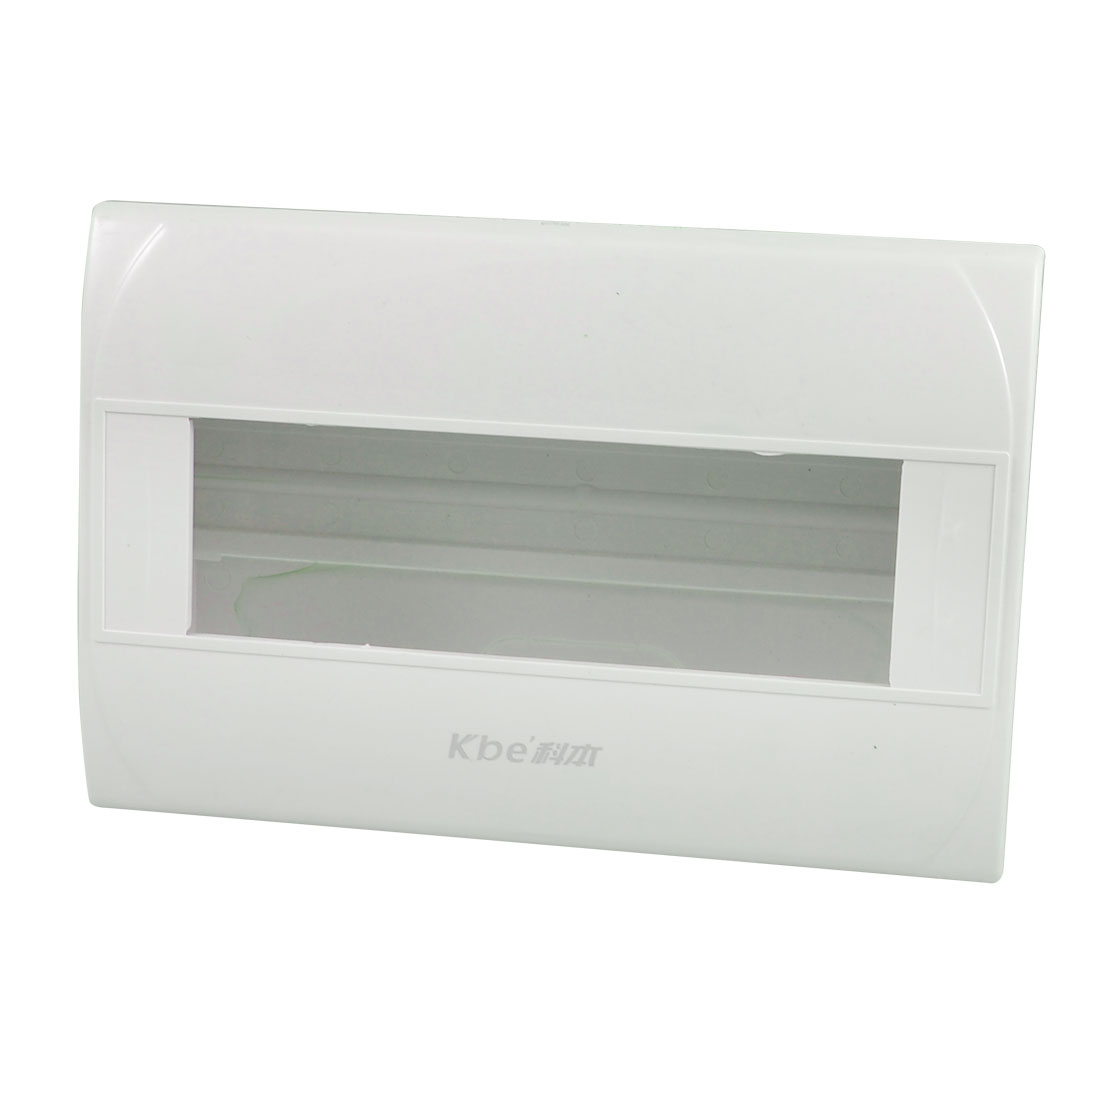 8-10 Way Rectangular White Hard Plastic Electrical Distribution Box